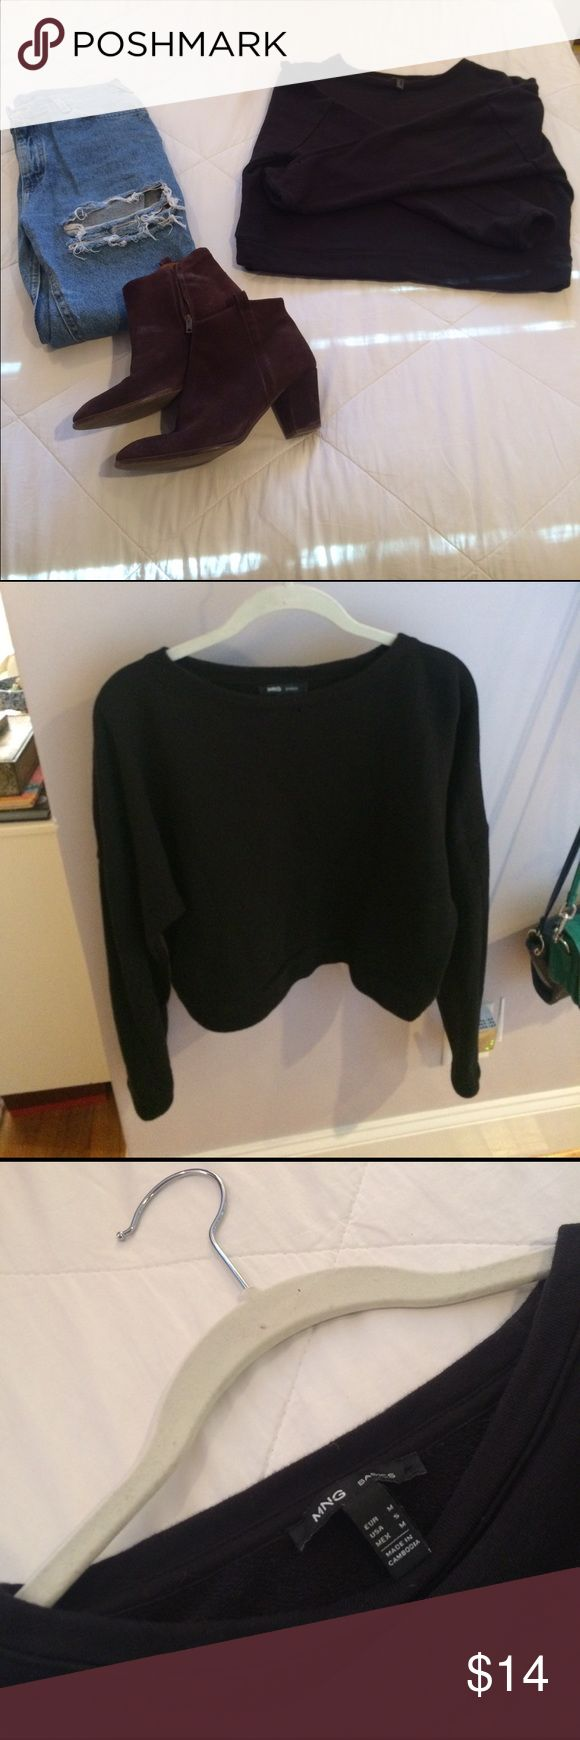 Cute cropped black sweatshirt MNG by Mango very cute basic black sweatshirt by MNG for Mango. can be dresses up or down. Very versatile. 6in ruler shown in 5th picture. About 18 in long from shoulder. Size medium. Shirt stops right below belly button. Worn once before, in great condition. only sweatshirt included. MNG by Mango Tops Sweatshirts & Hoodies